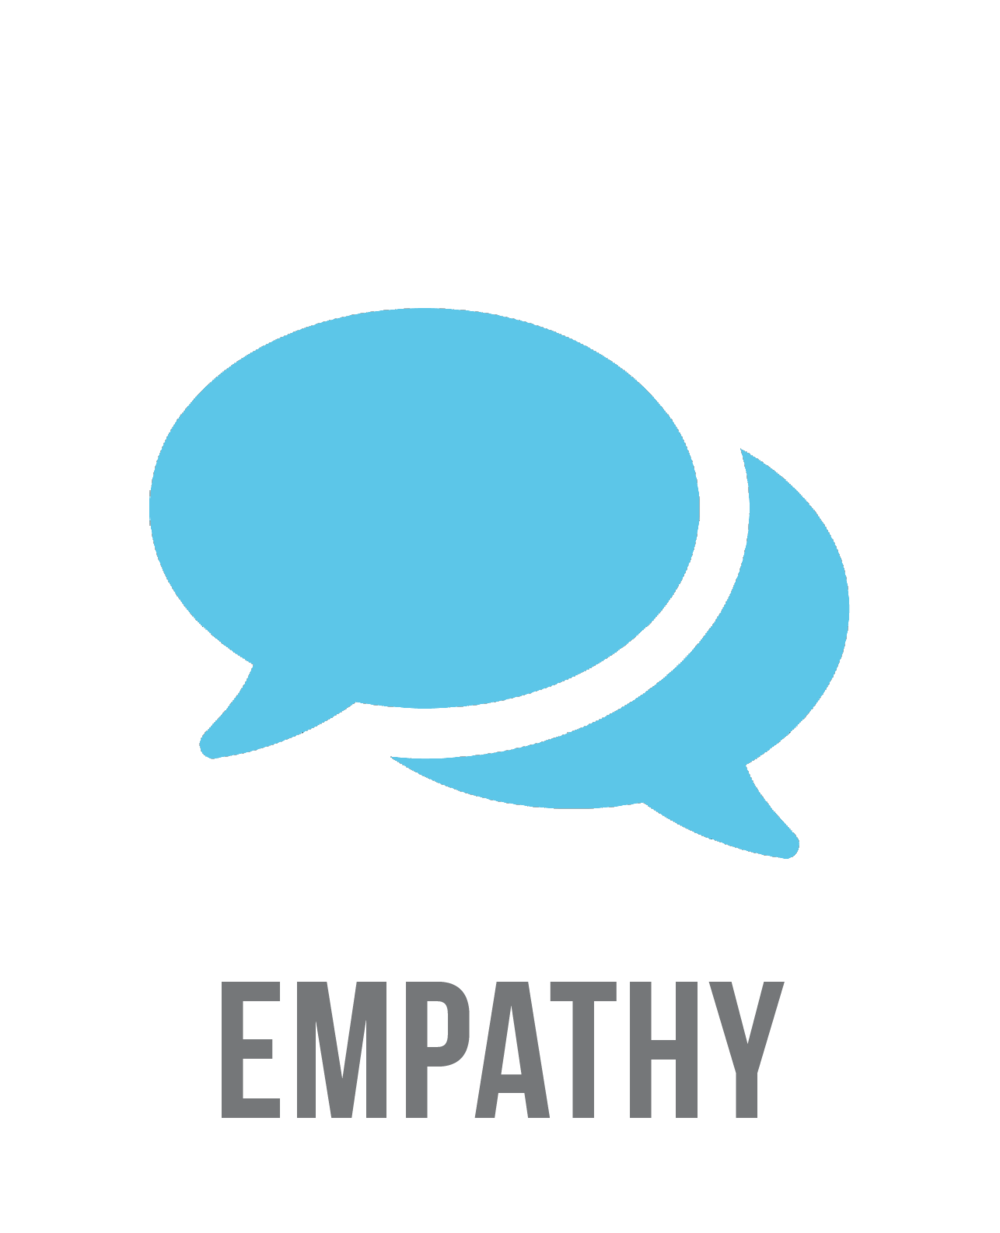 This workshop is designed as an intro to the concept and practice of empathizing. It can fit in at any stage of the background research/case study or empathize steps of the Knowledge to Action process. Ideally, this workshop will happen before students are too far in any fieldwork or stakeholder interviews.